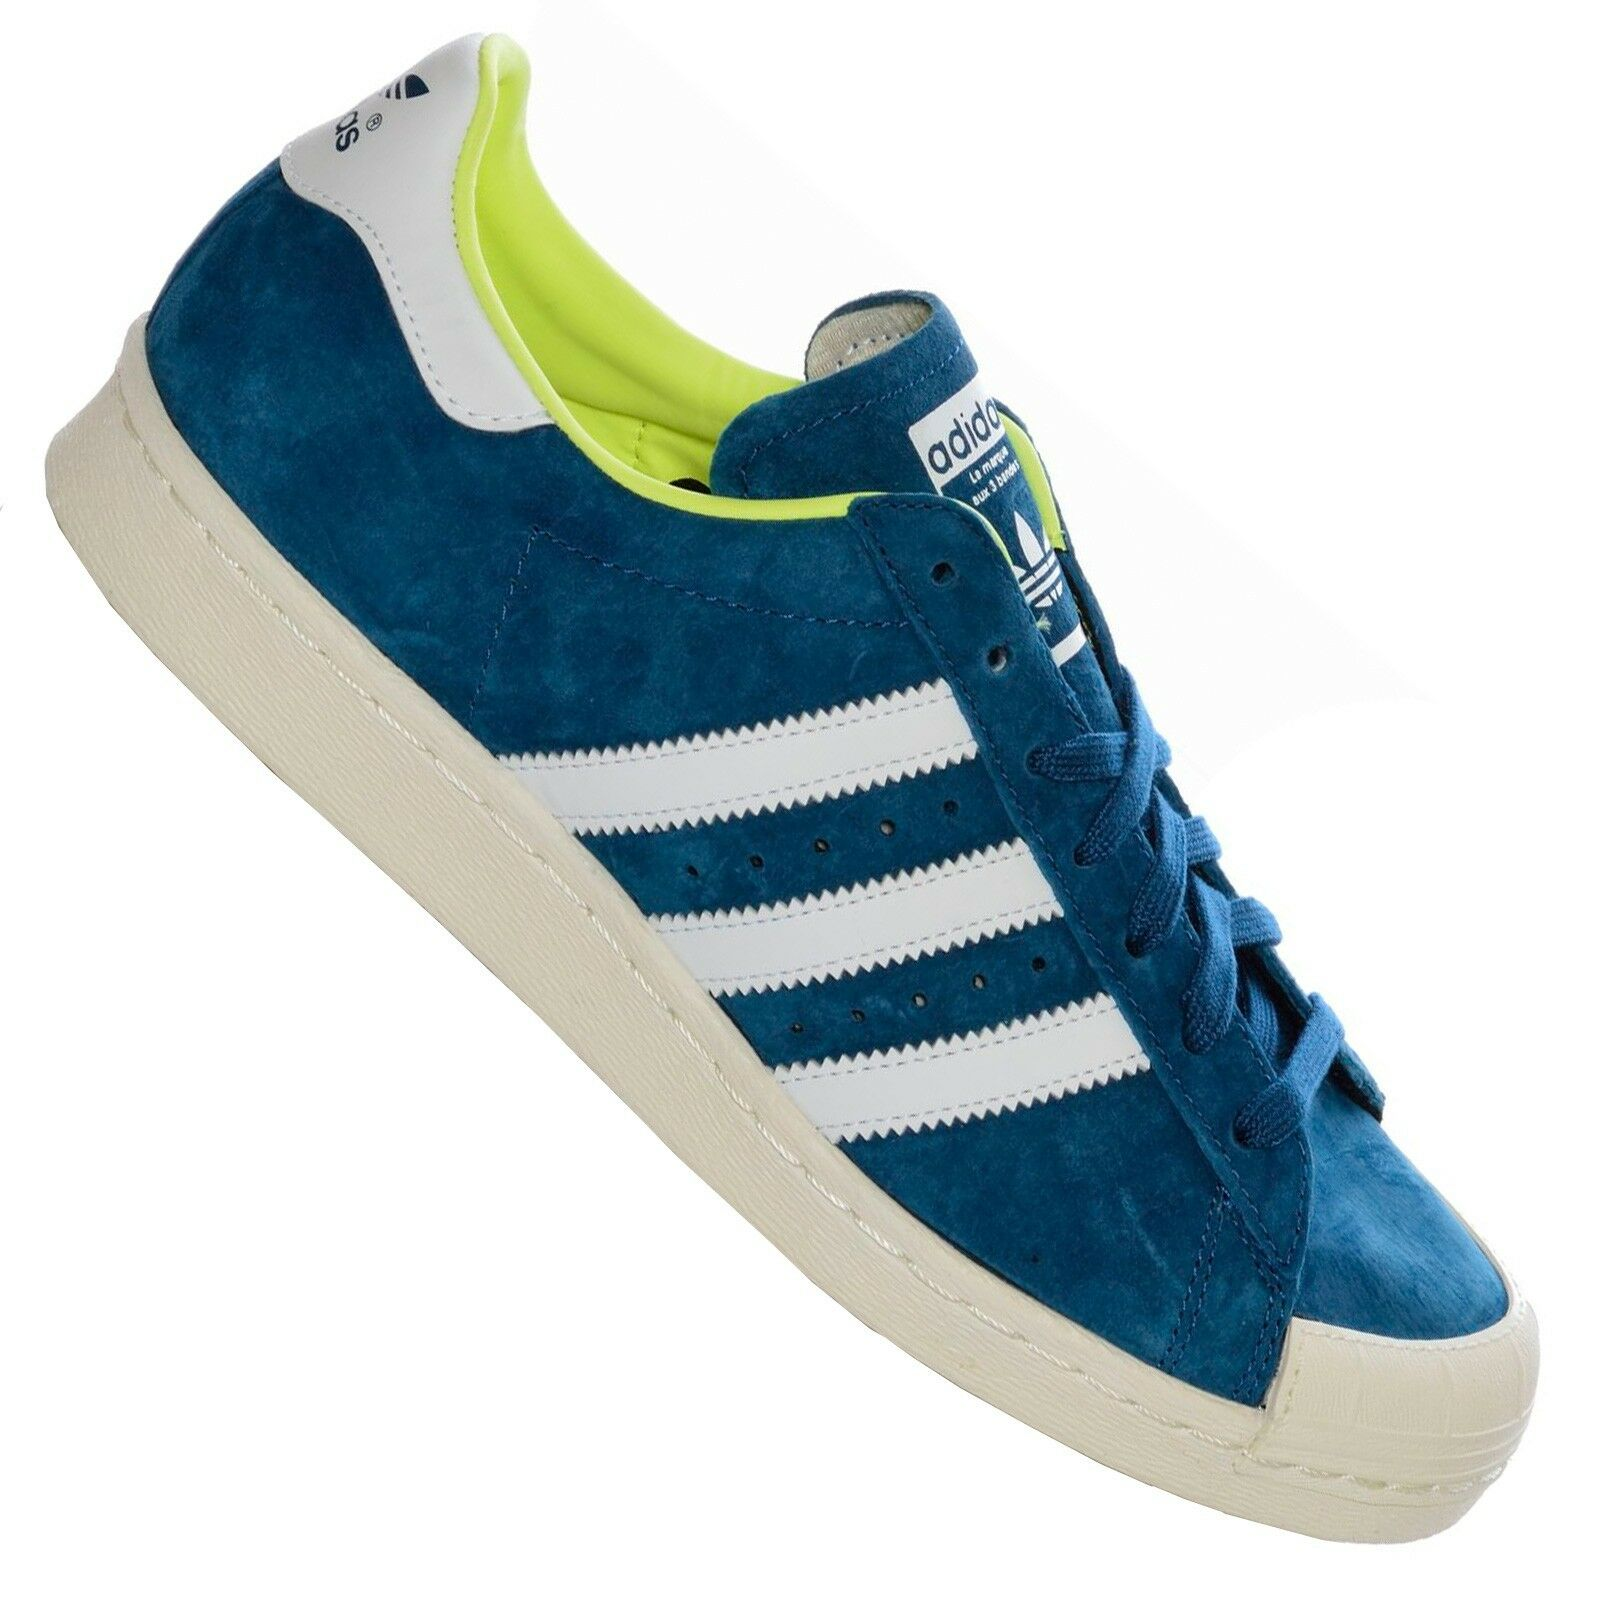 ADIDAS ORIGINALS SUPERSTAR 80s HALFSHELL SNEAKER LEDER TURNSCHUHE blue 38 2 3